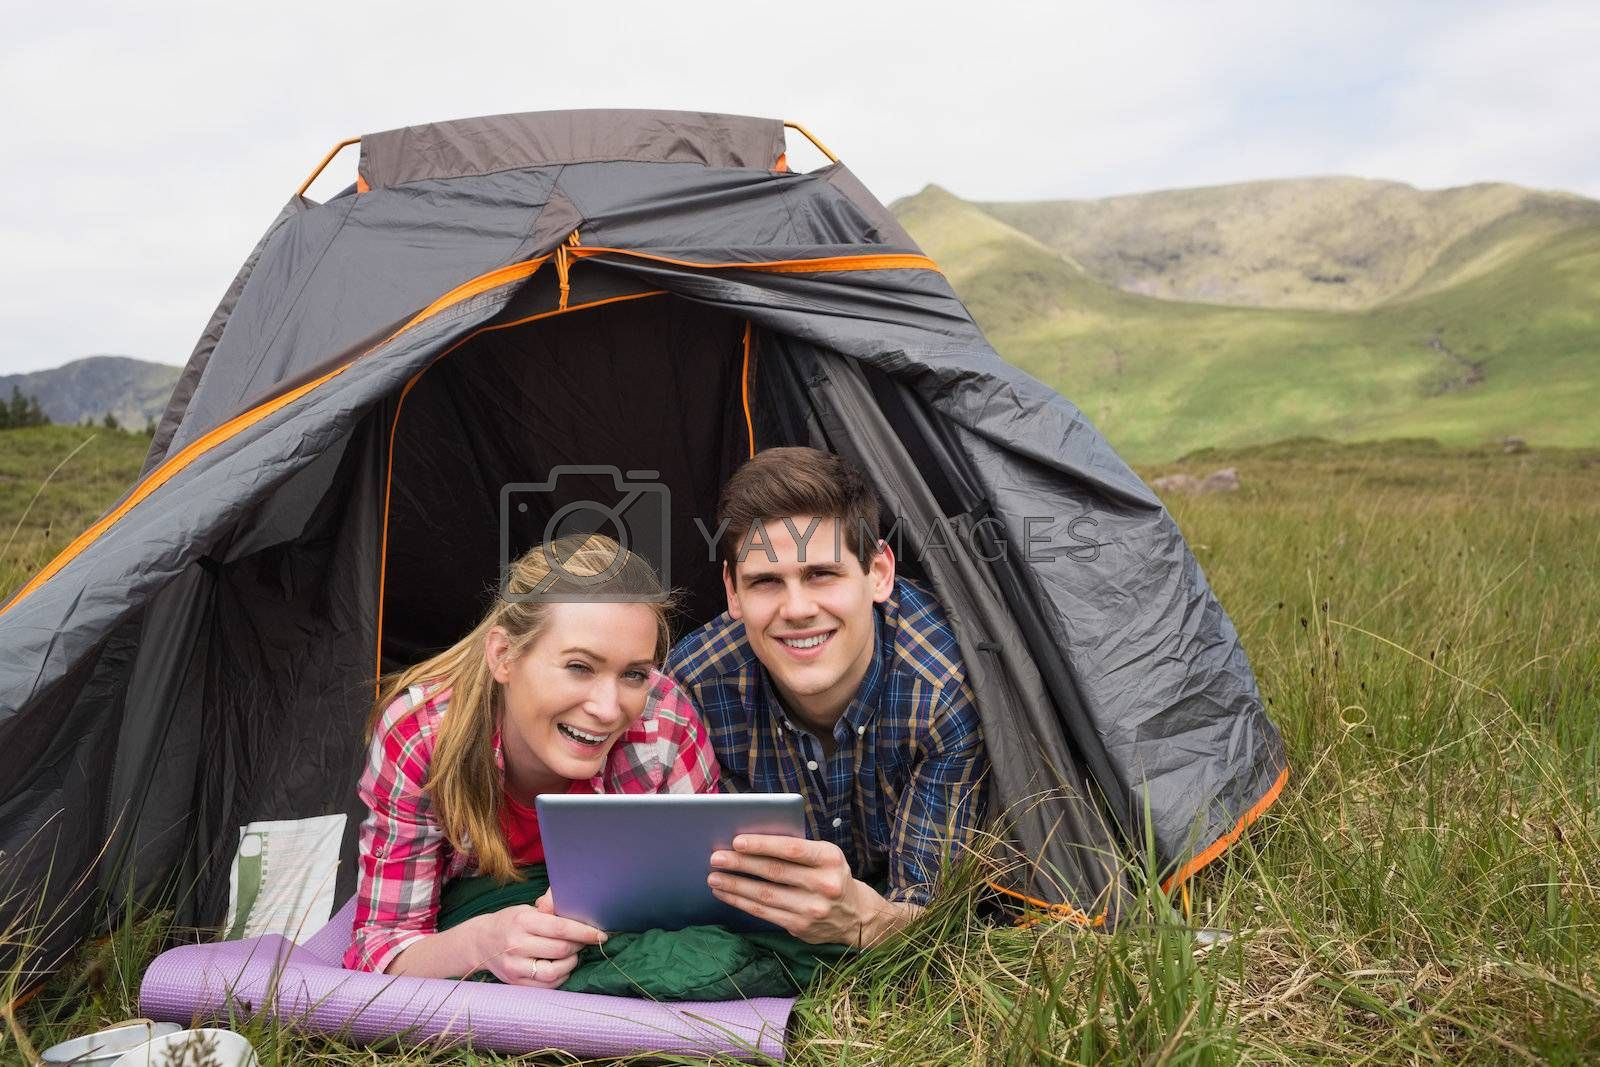 Smiling couple lying in their tent and using digital tablet by Wavebreakmedia